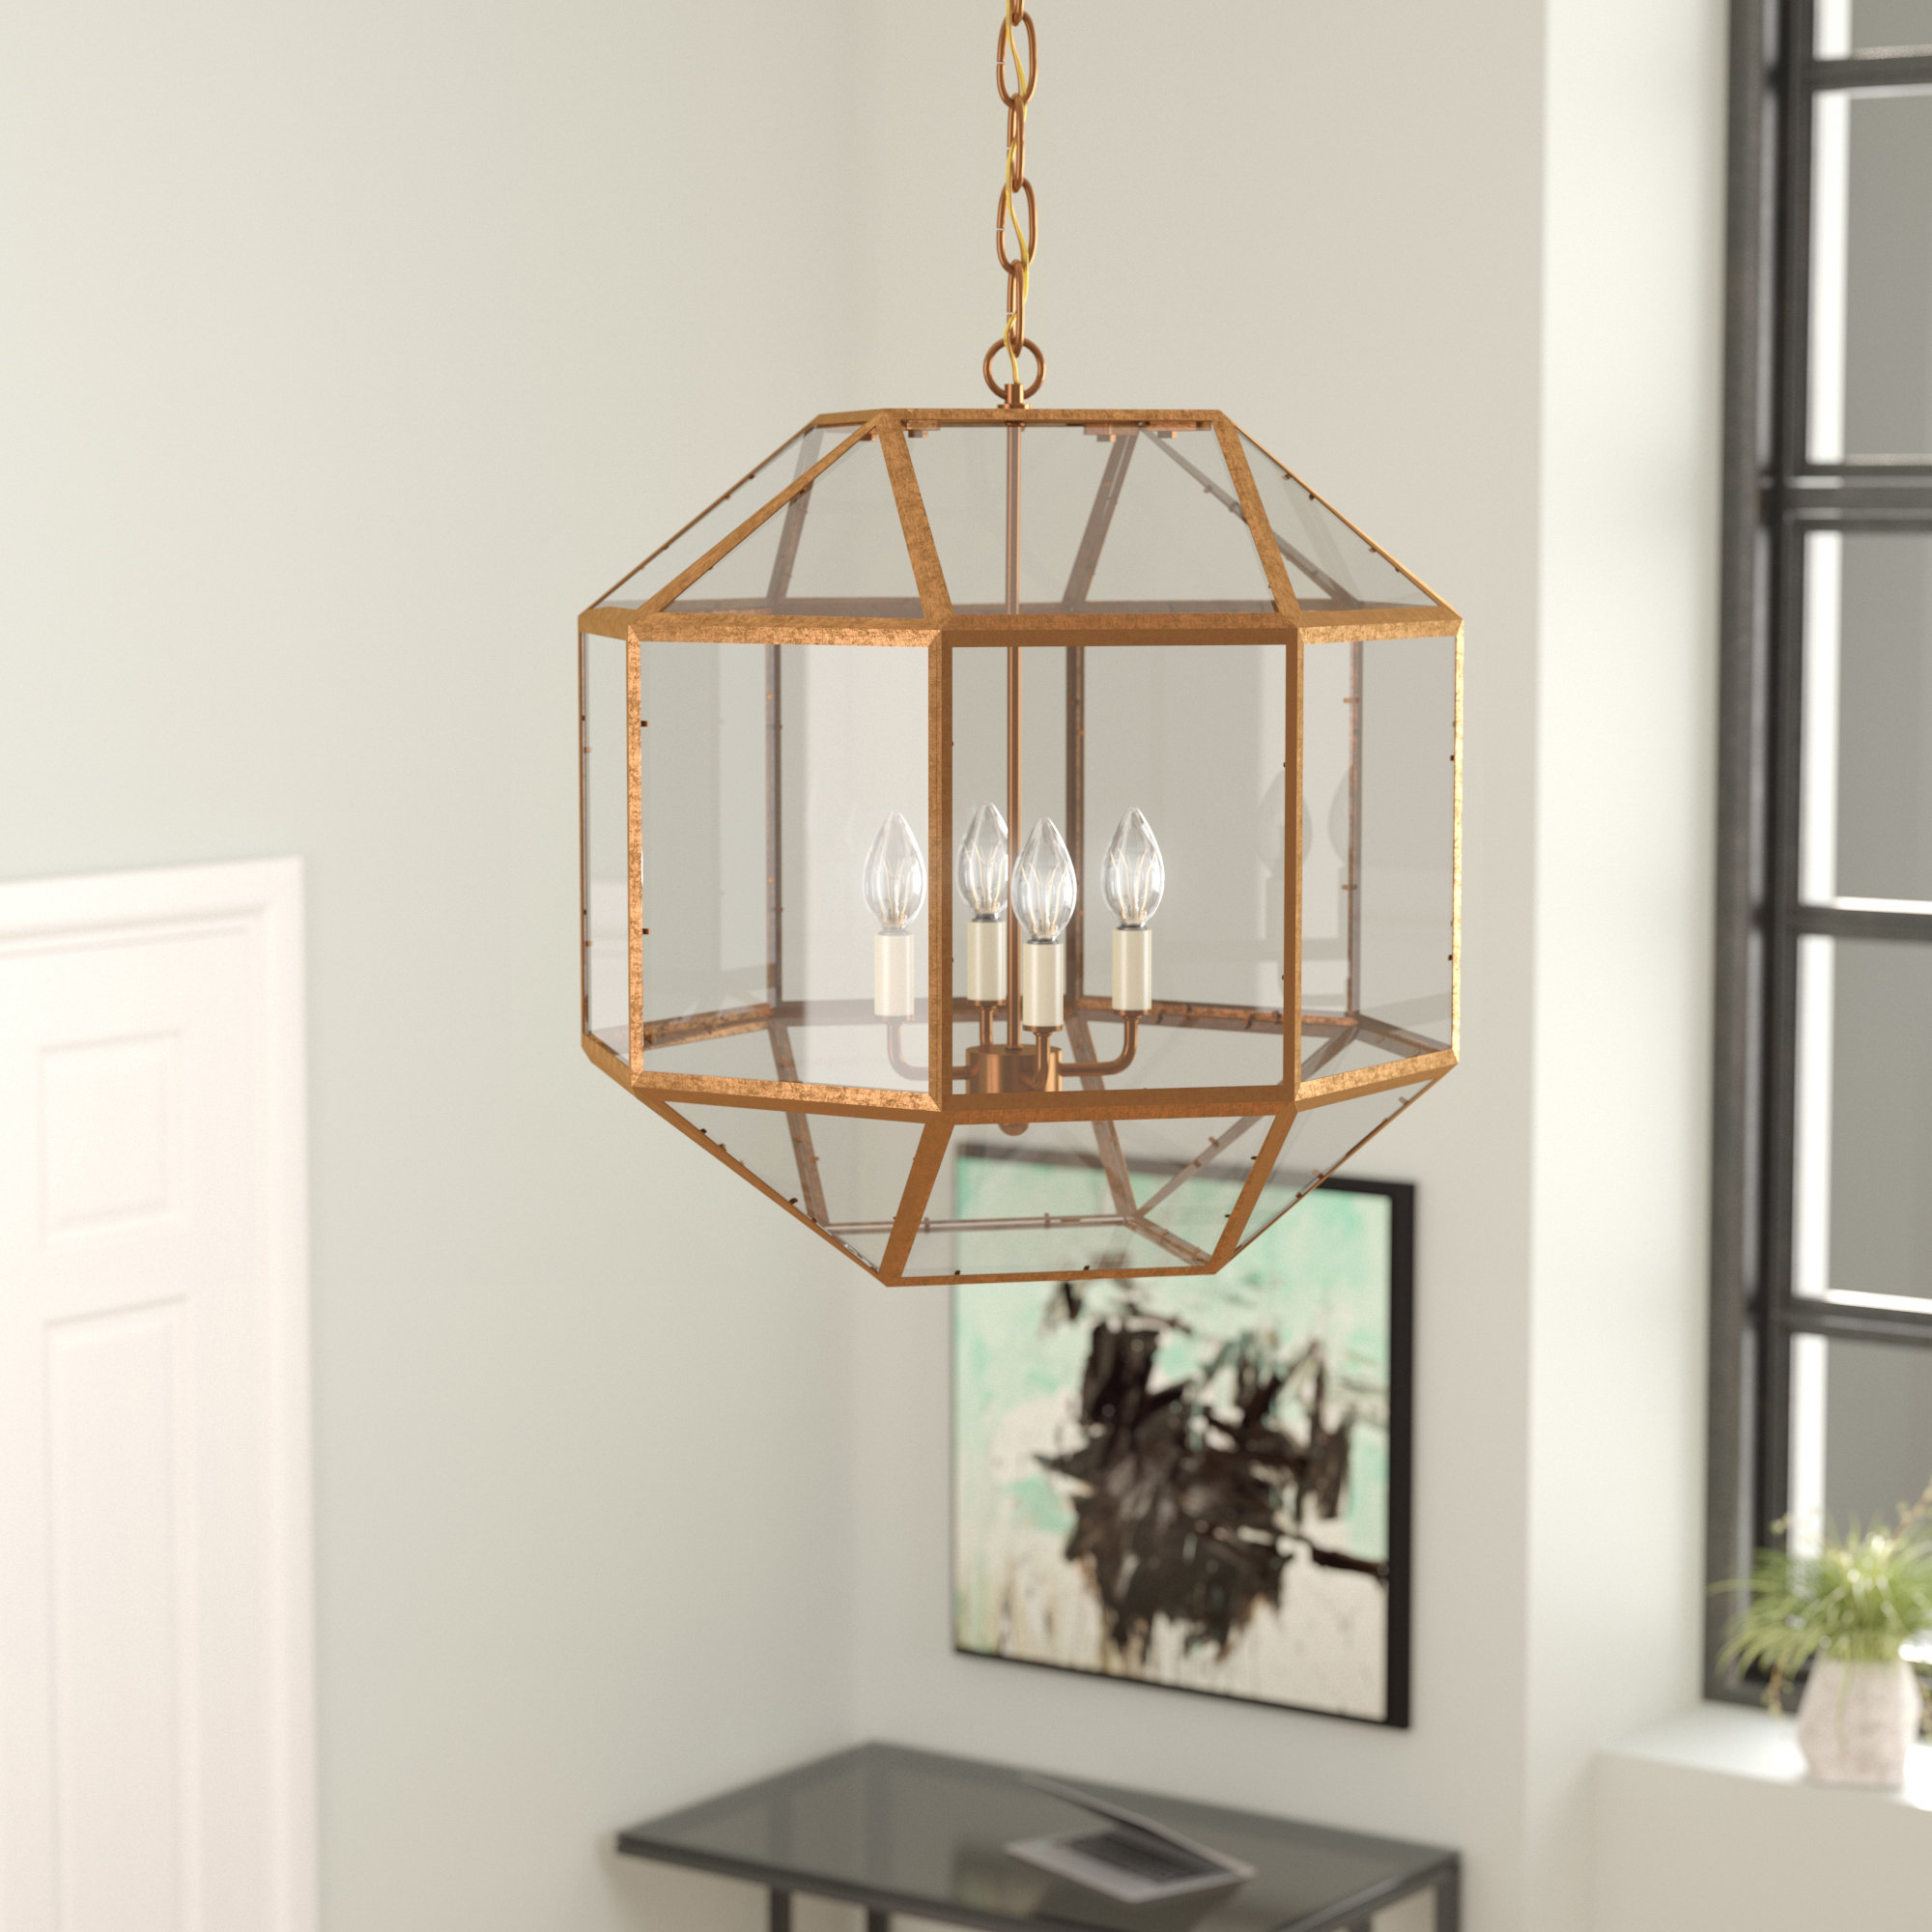 [%Geometric Chandeliers Sale – Up To 65% Off Until September With Regard To Recent Tabit 5 Light Geometric Chandeliers|Tabit 5 Light Geometric Chandeliers Intended For Well Known Geometric Chandeliers Sale – Up To 65% Off Until September|Widely Used Tabit 5 Light Geometric Chandeliers Inside Geometric Chandeliers Sale – Up To 65% Off Until September|Fashionable Geometric Chandeliers Sale – Up To 65% Off Until September Throughout Tabit 5 Light Geometric Chandeliers%] (View 12 of 25)